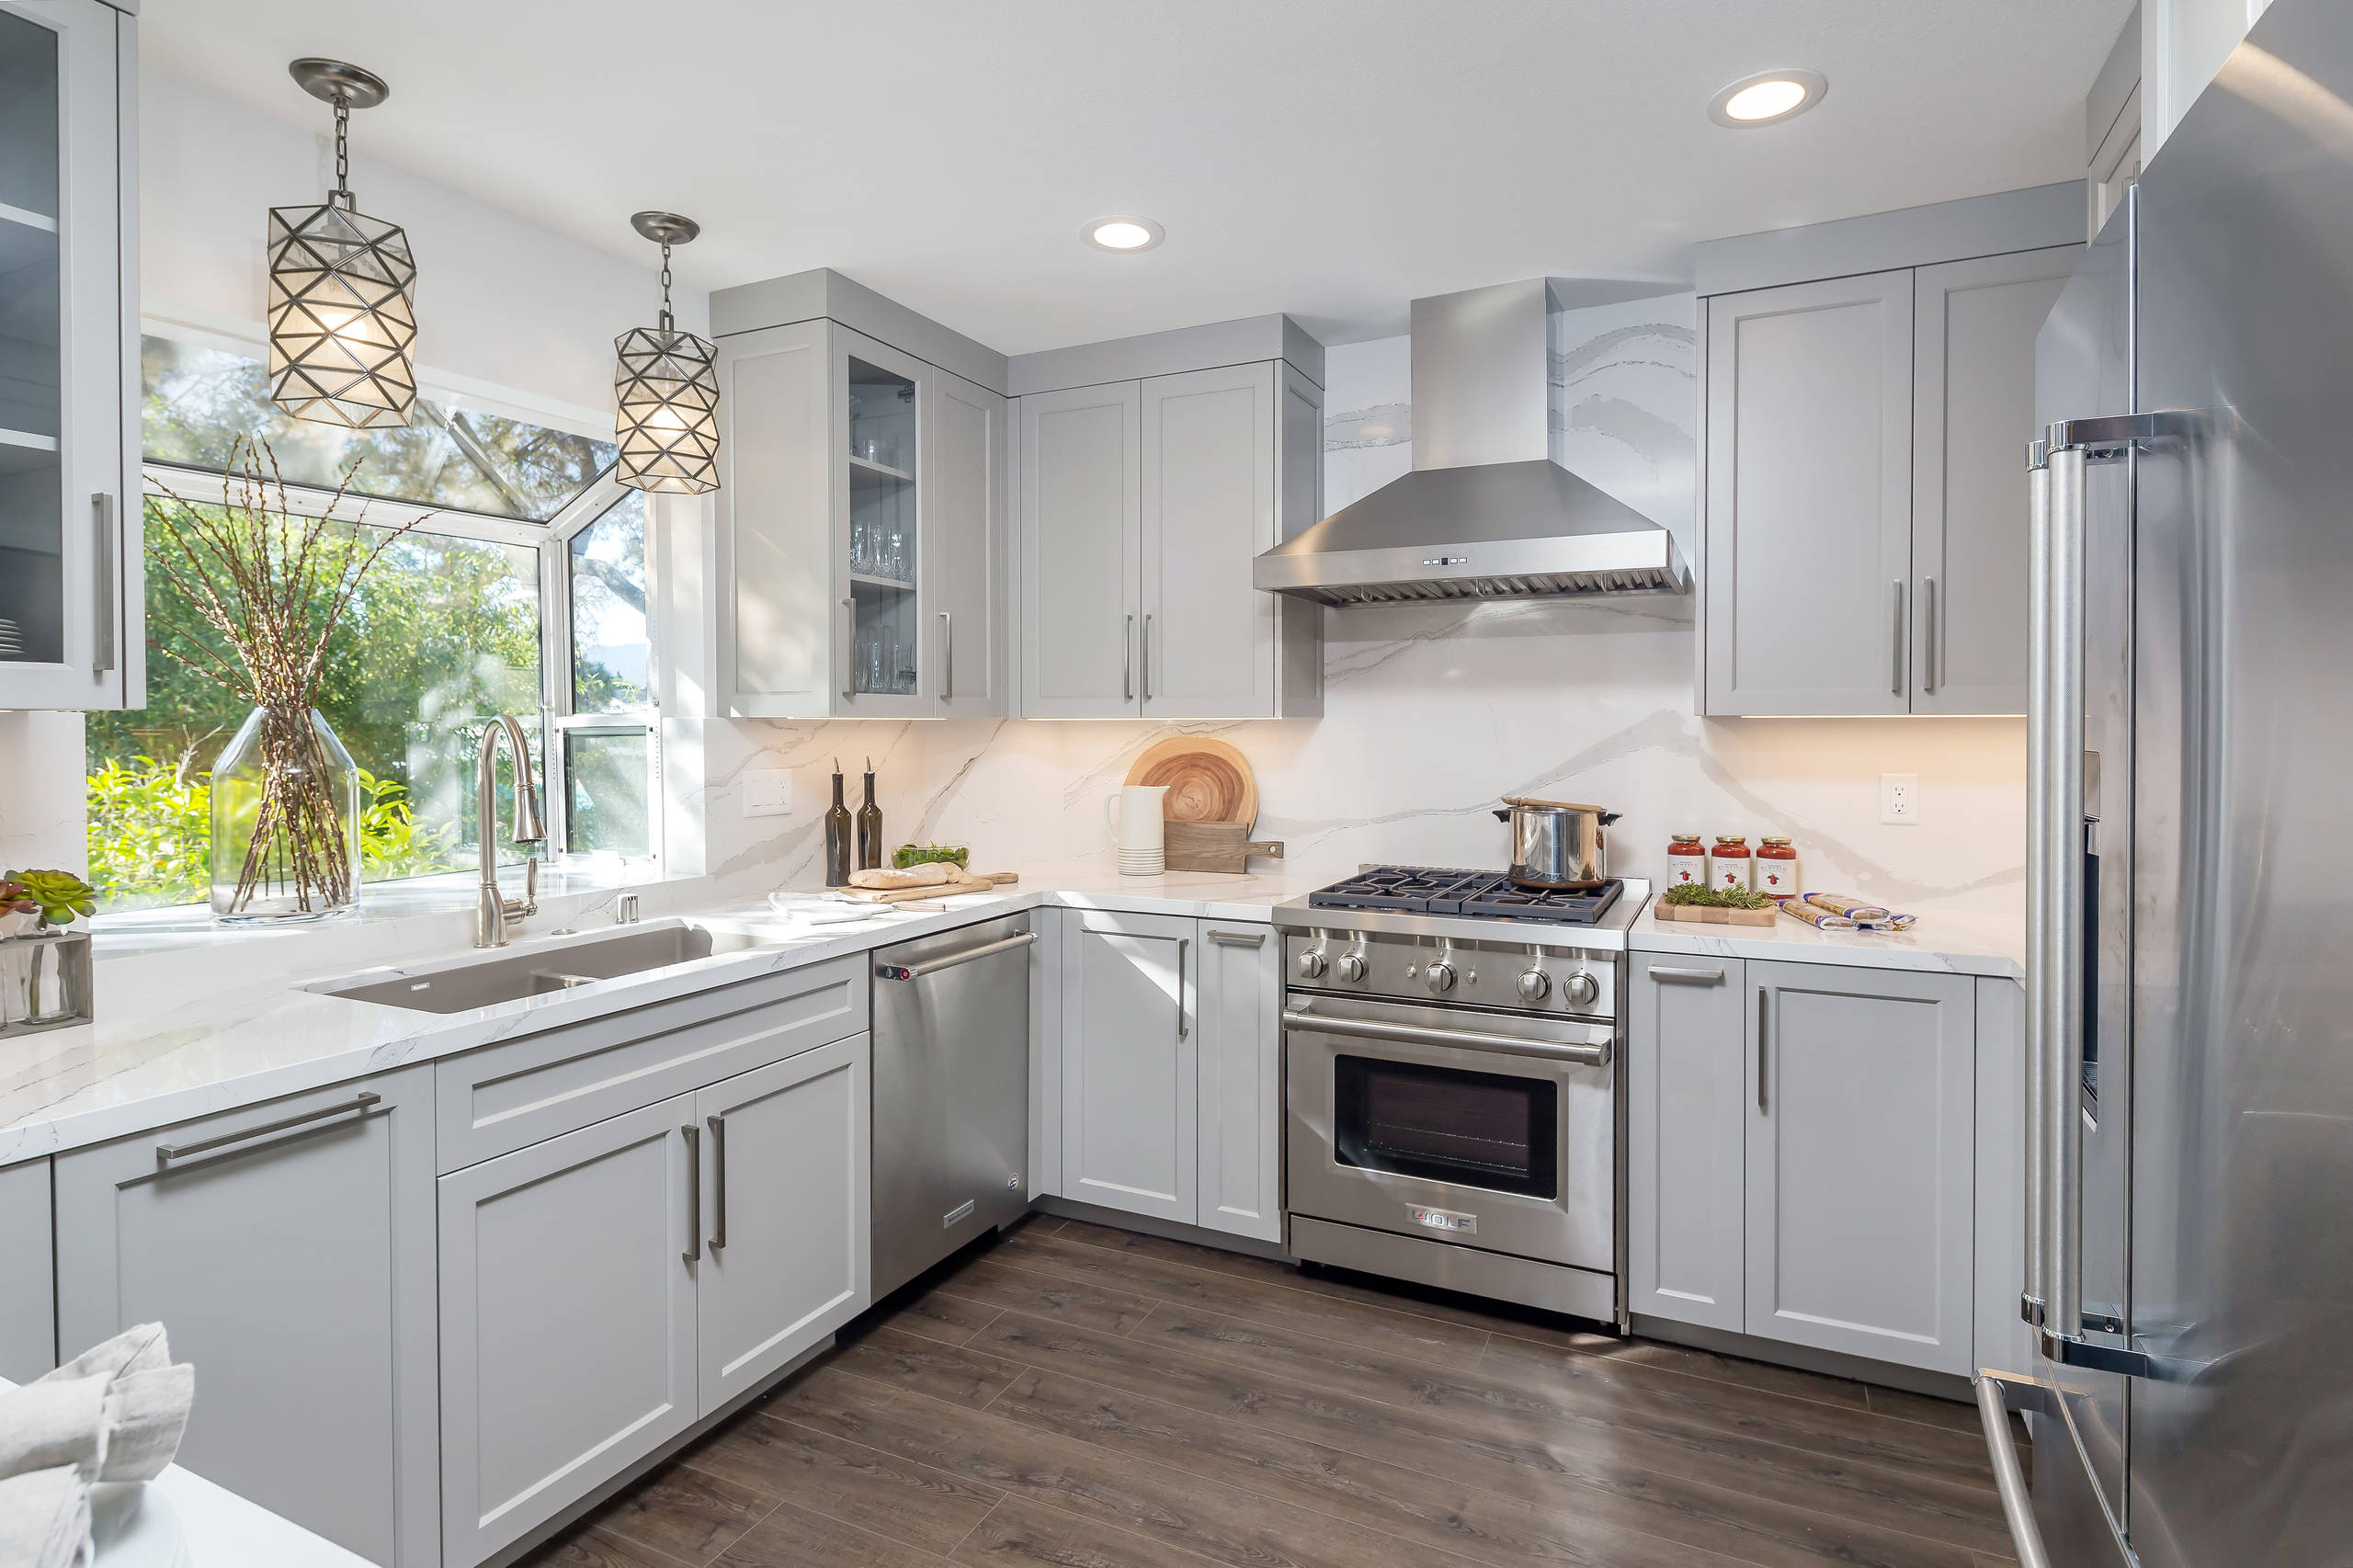 75 Beautiful U Shaped Kitchen With No Island Pictures Ideas April 2021 Houzz